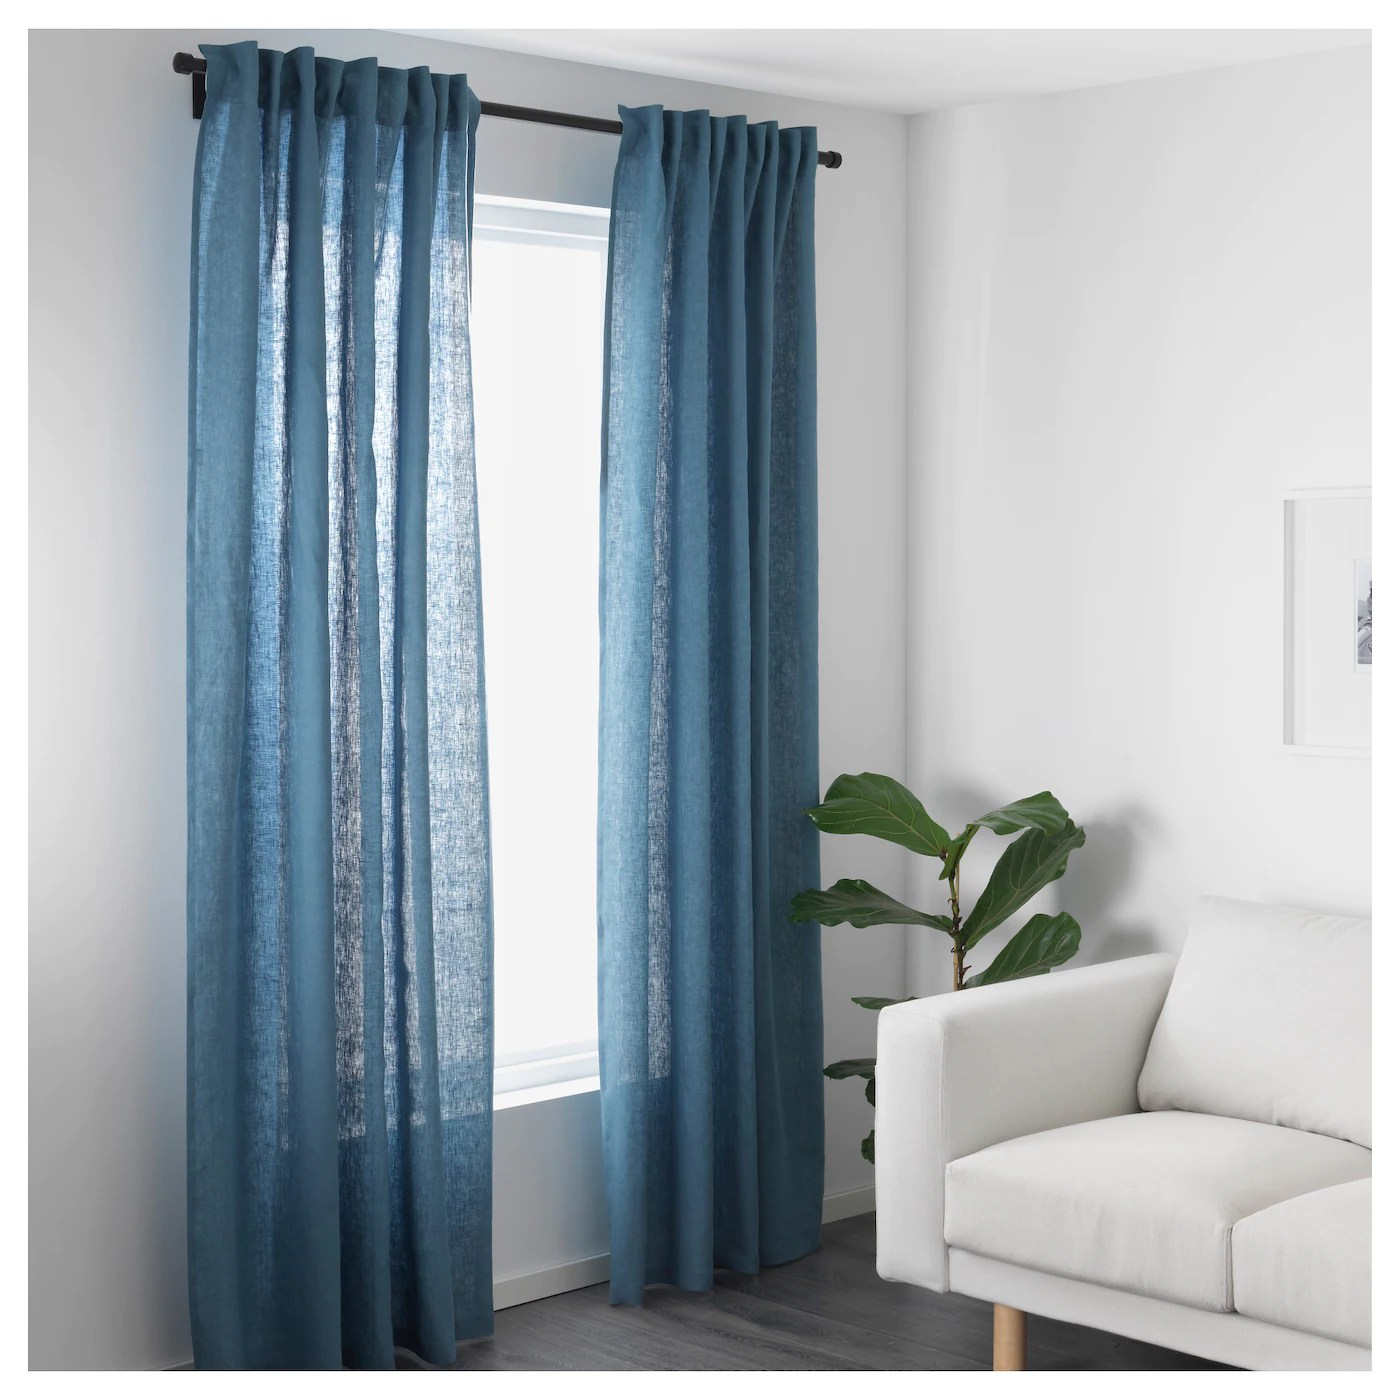 Curtain Ikea Aina Curtains 1 Pair Blue 145 X 250 Cm Ikea